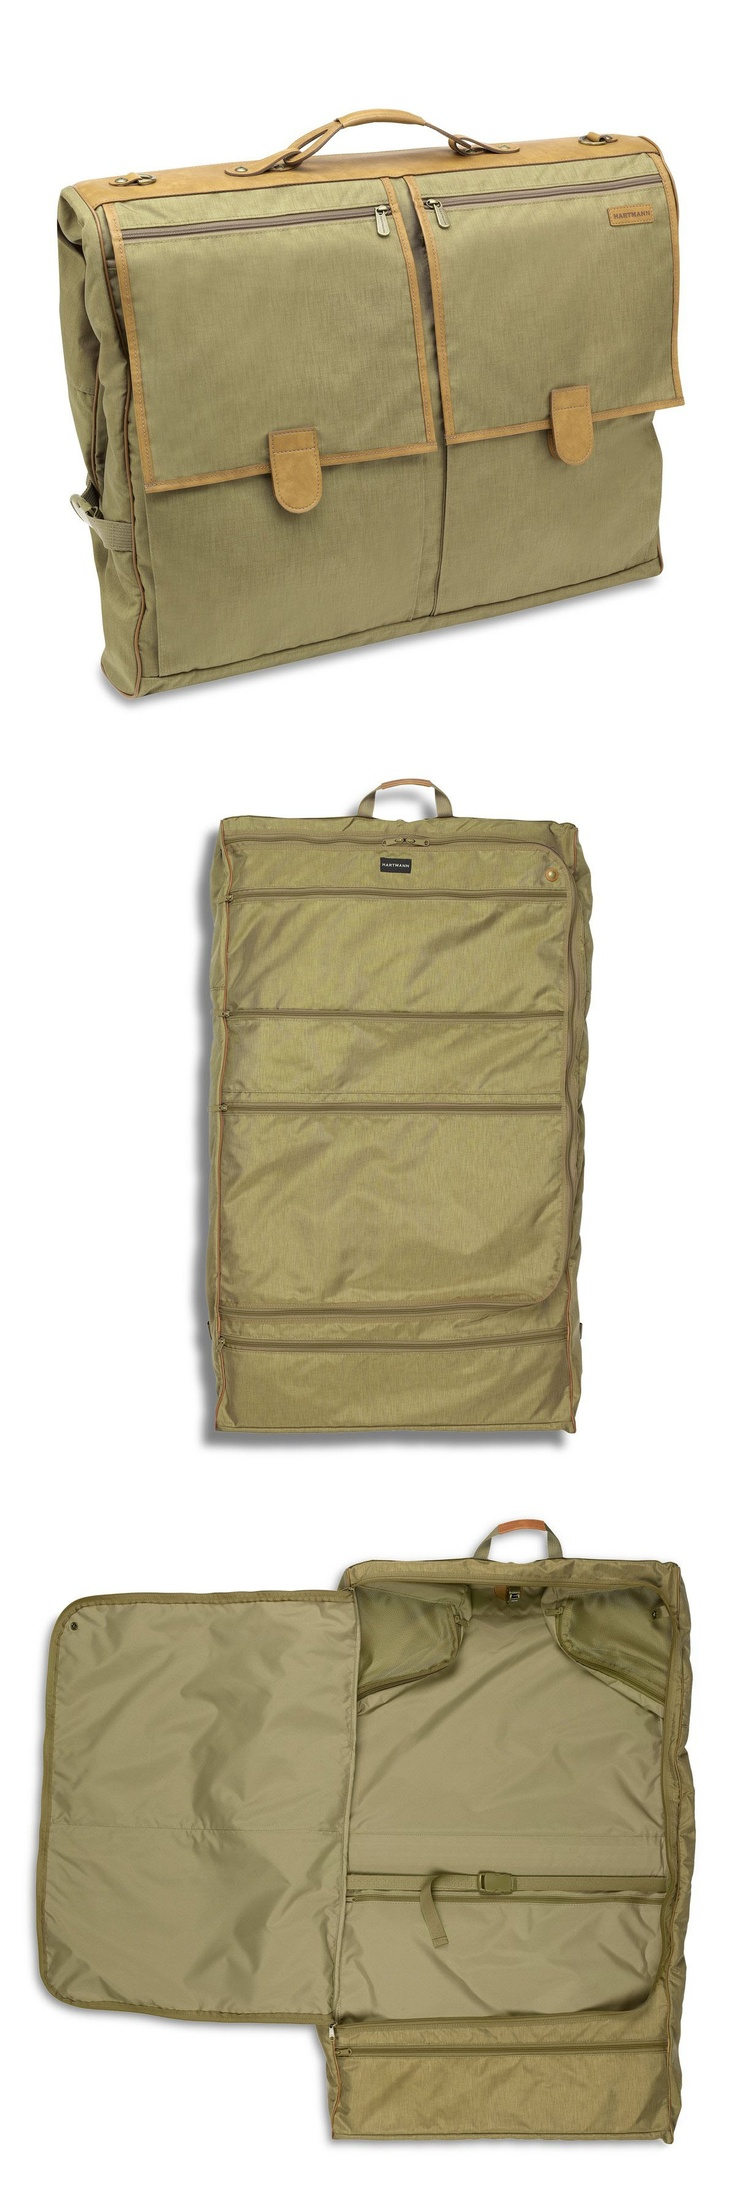 Packcloth Deluxe Garment Bag   Exceptionally lightweight and featuring 12 interior pockets—including a long zip pocket for shoes, three large zip pockets for foldable clothing items, and corner mesh pockets—the Deluxe Garment Bag provides travelers with storage space for at least three suits in its locking hanger trolley and restraining straps under its snap-away packing curtain. http://bit.ly/JZQLEb